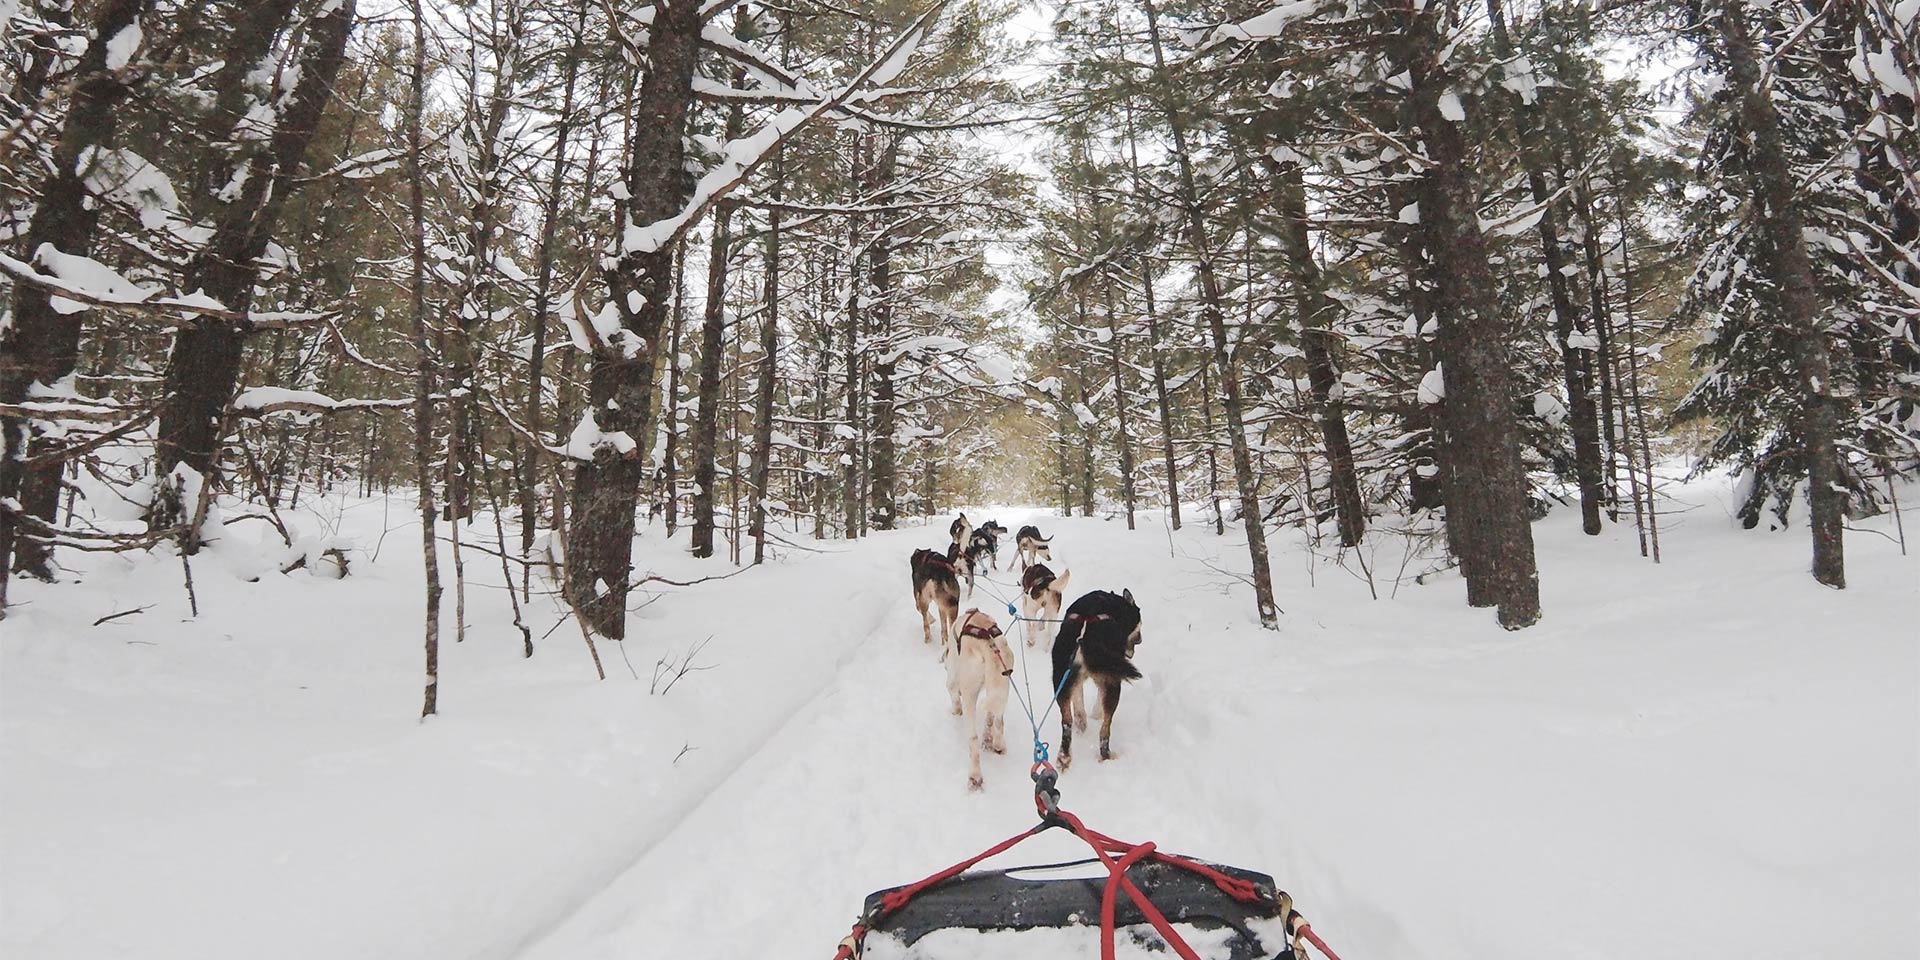 dogs pulling dog sled